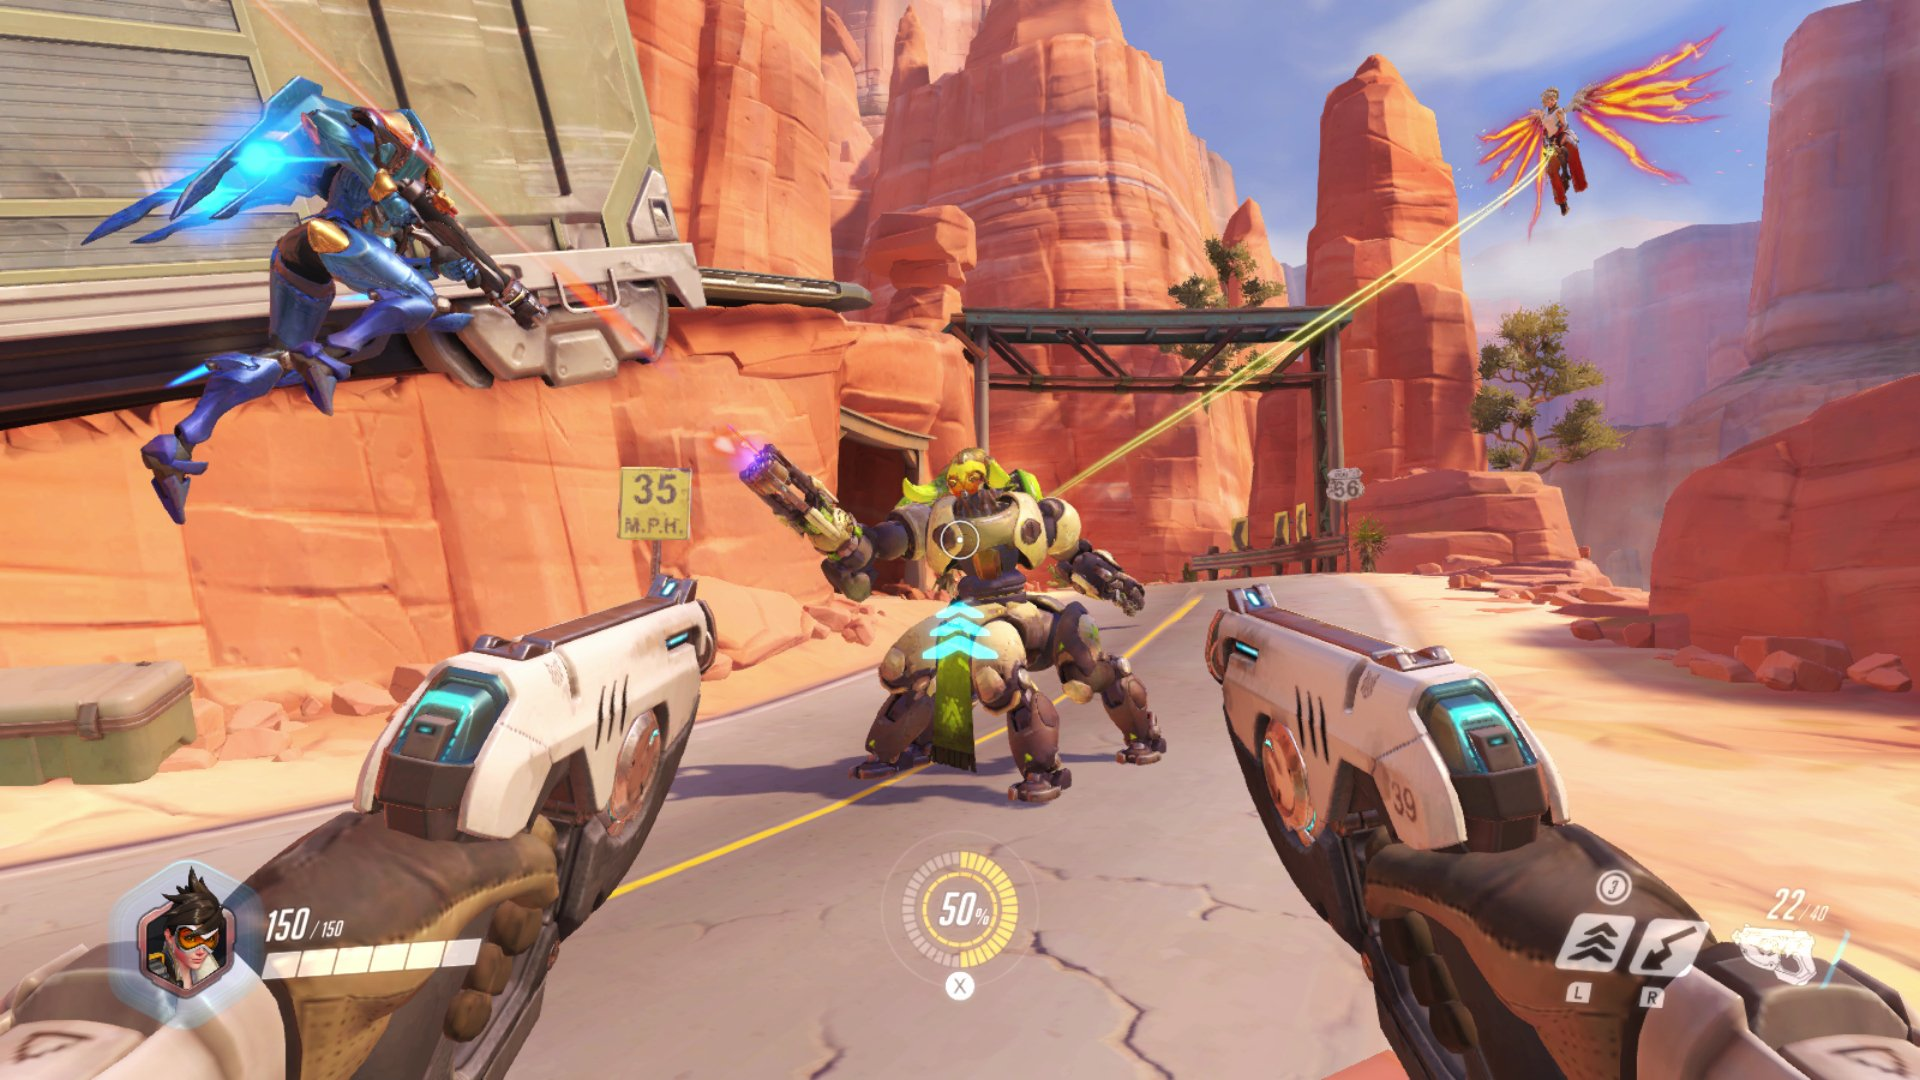 Overwatch Update 3.12 Today June 9 – Patch Notes